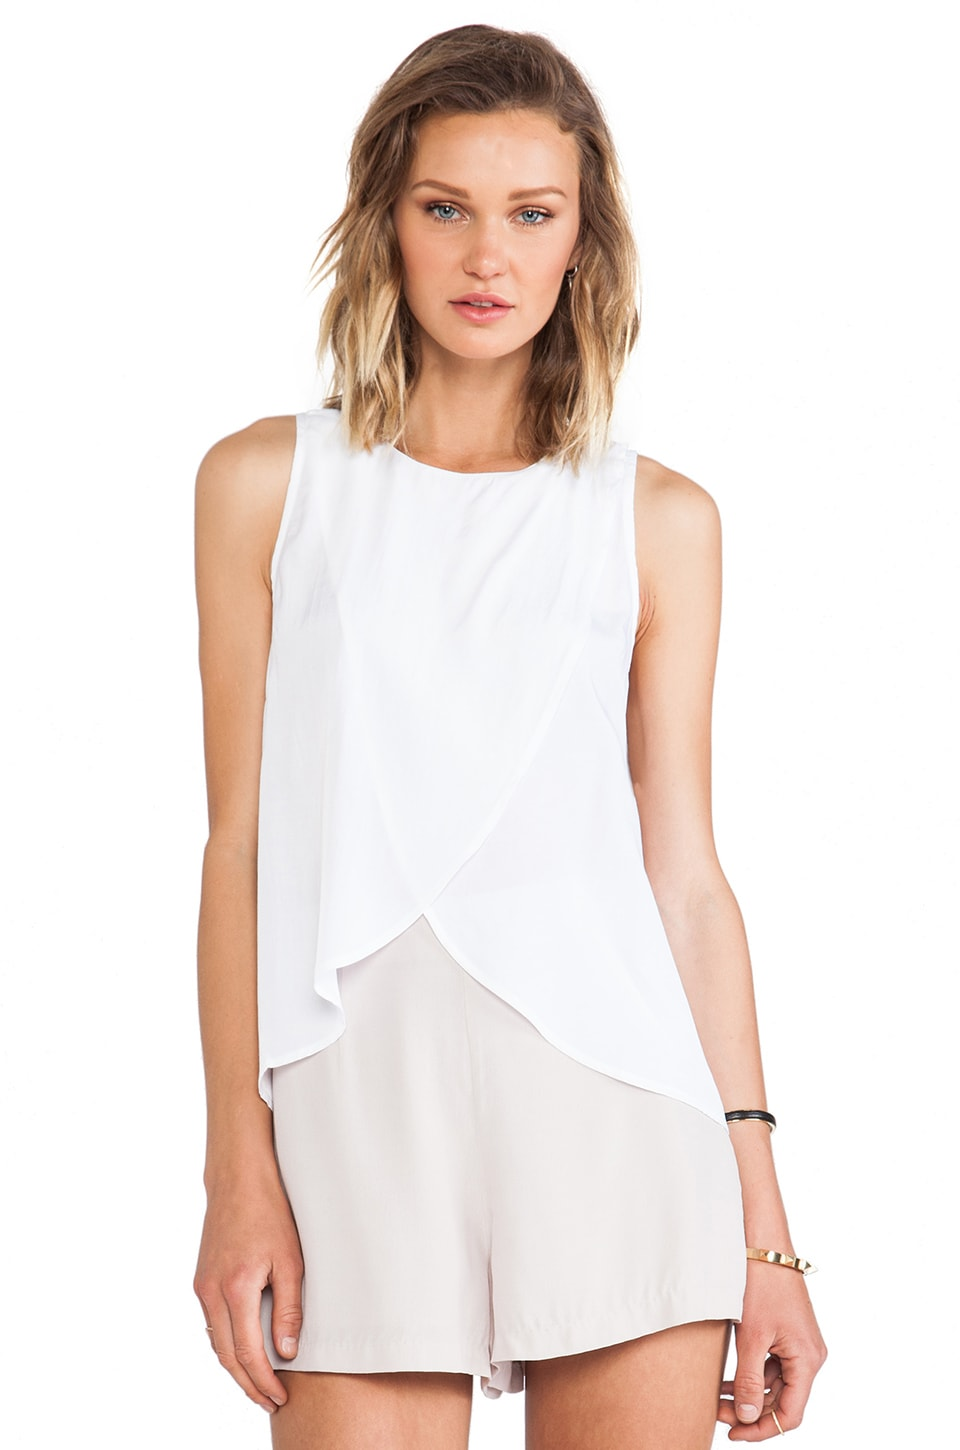 Minty Meets Munt Celina Wrap Top in White